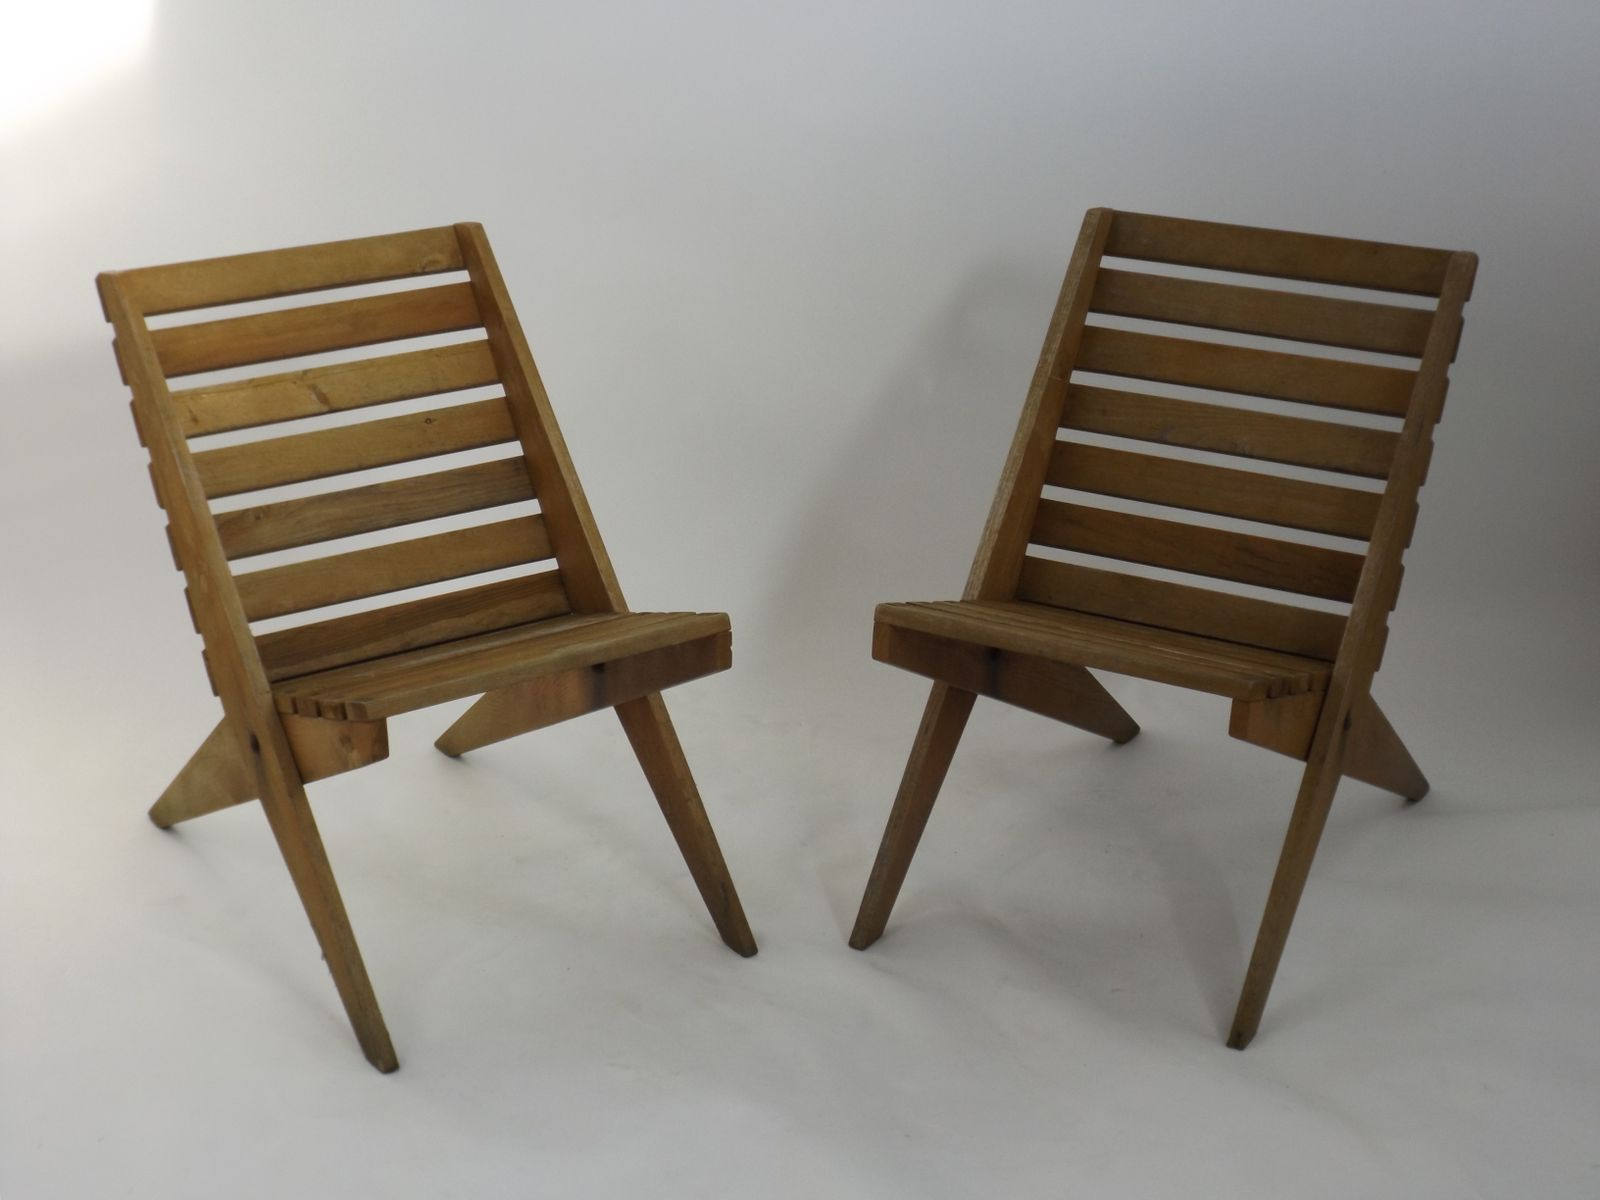 Scissor Folding Chairs 1950s Set of 2 for sale at Pamono